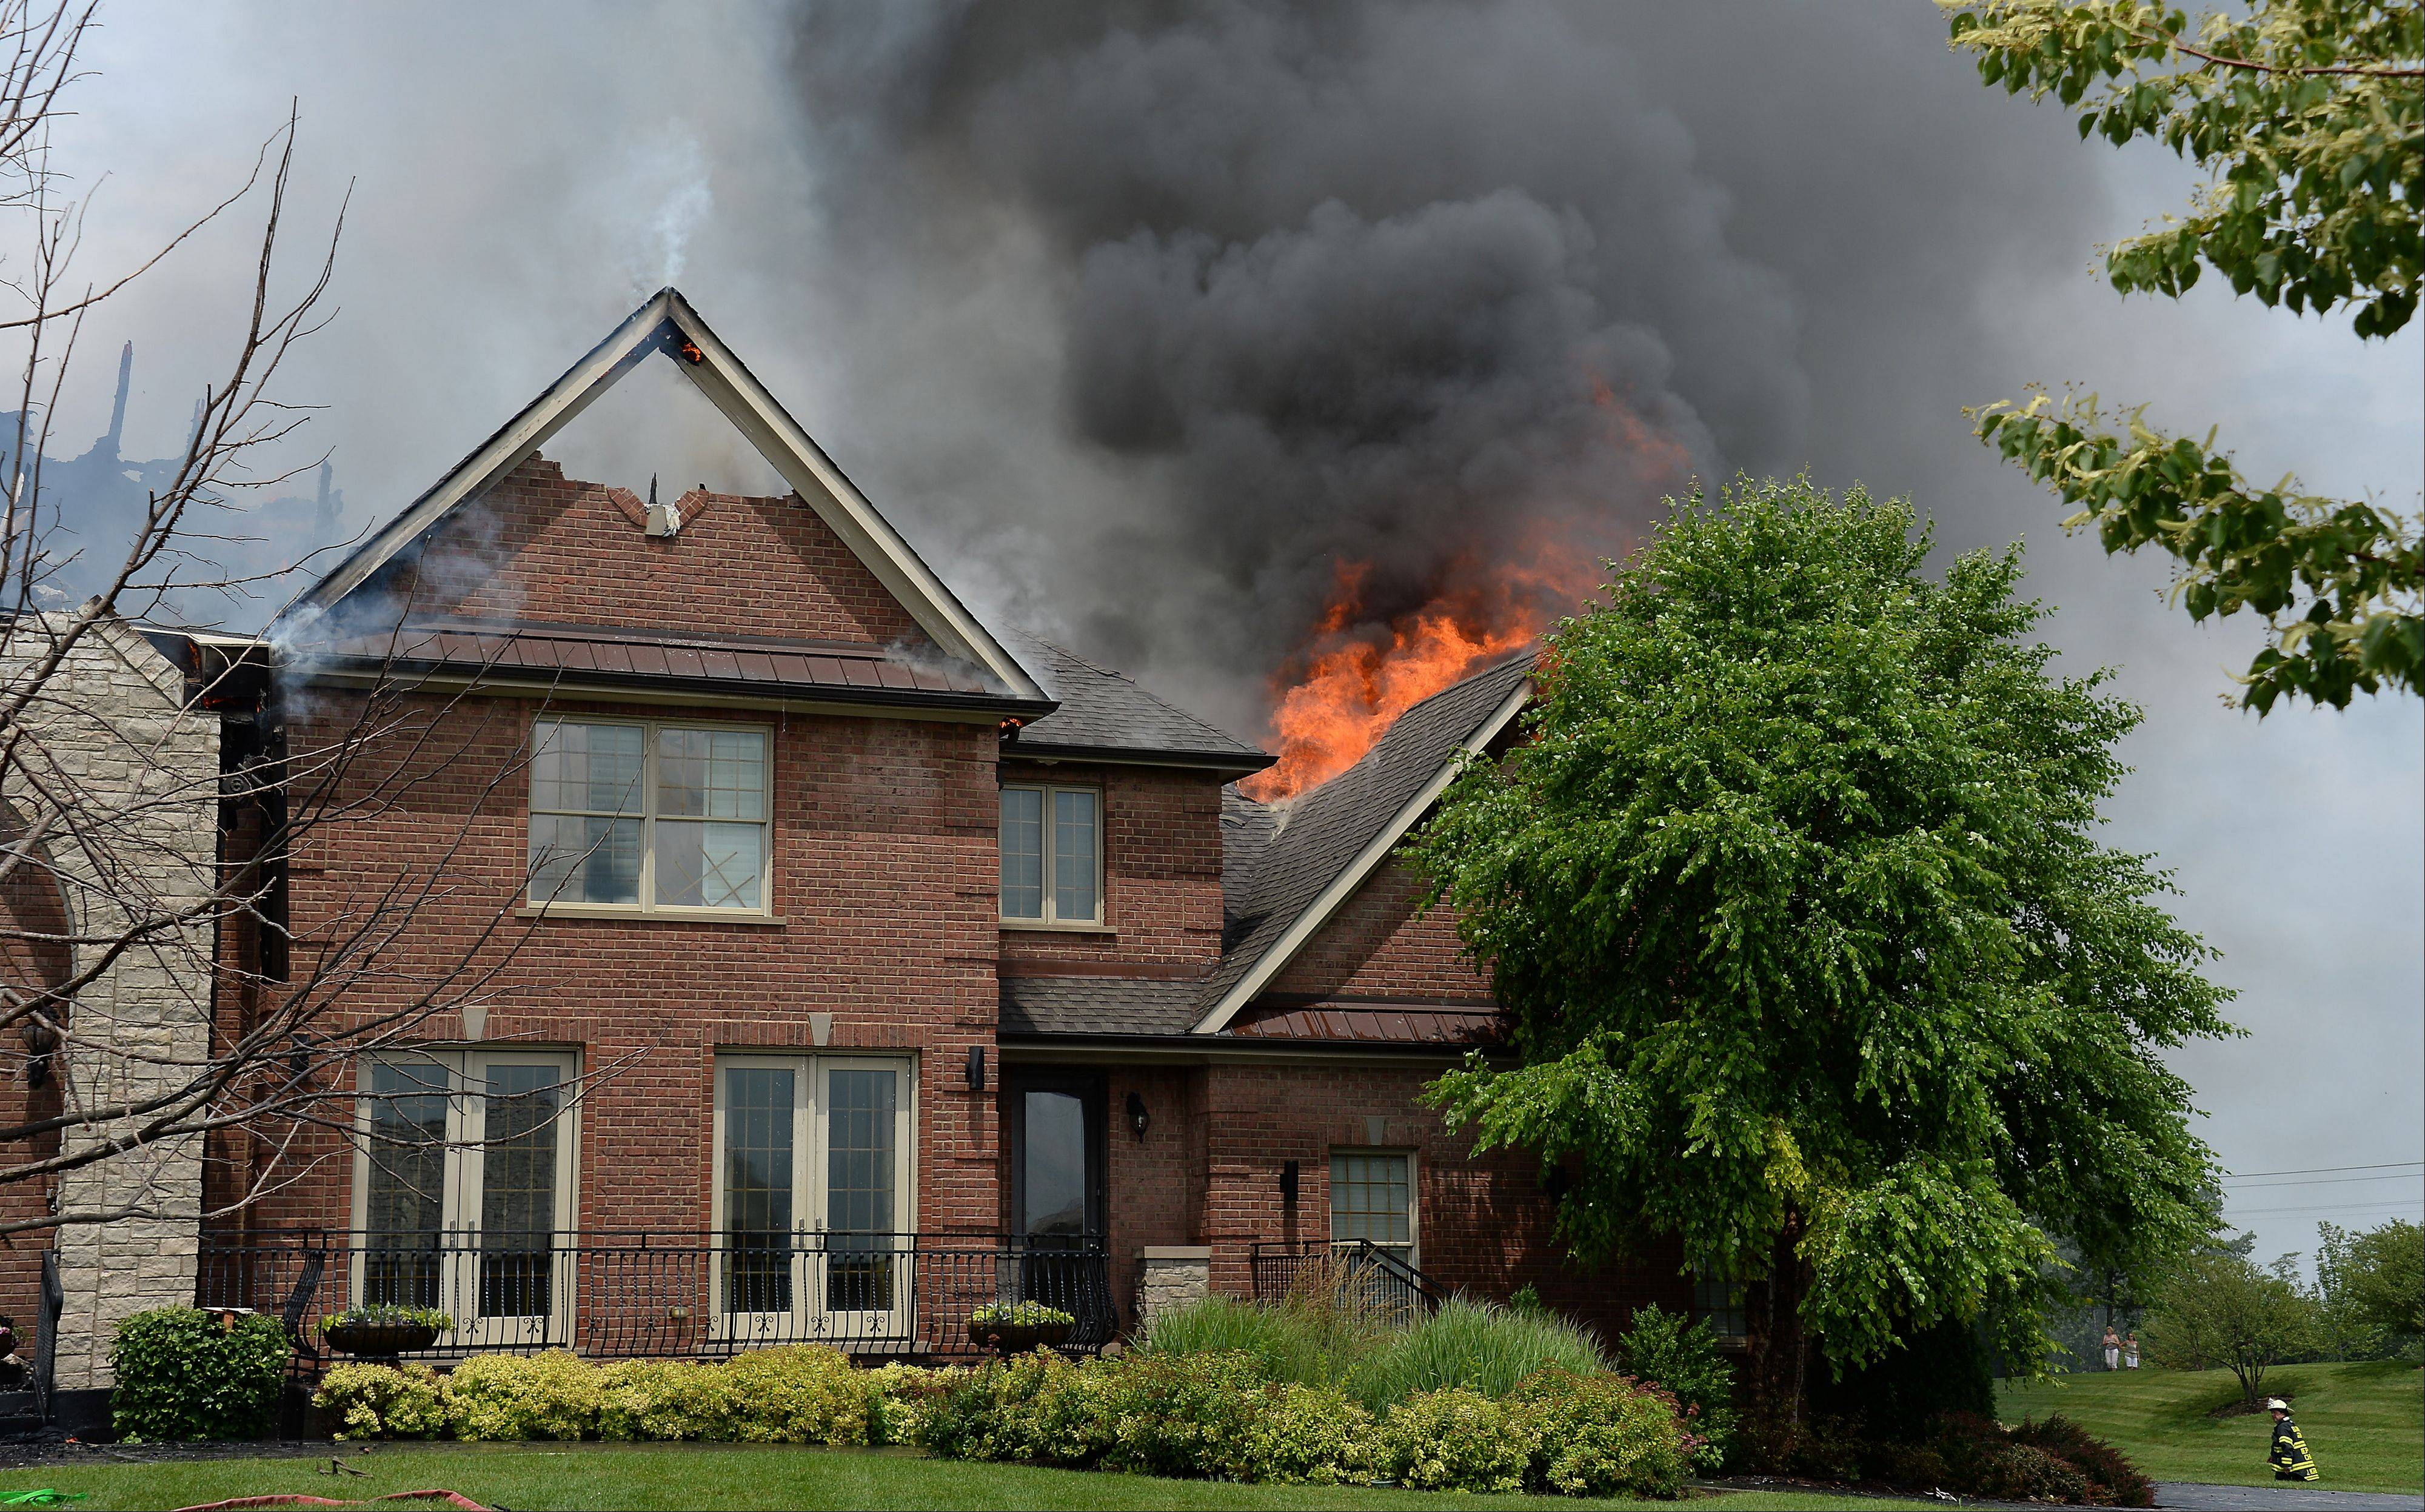 South Barrington family safe as house burns